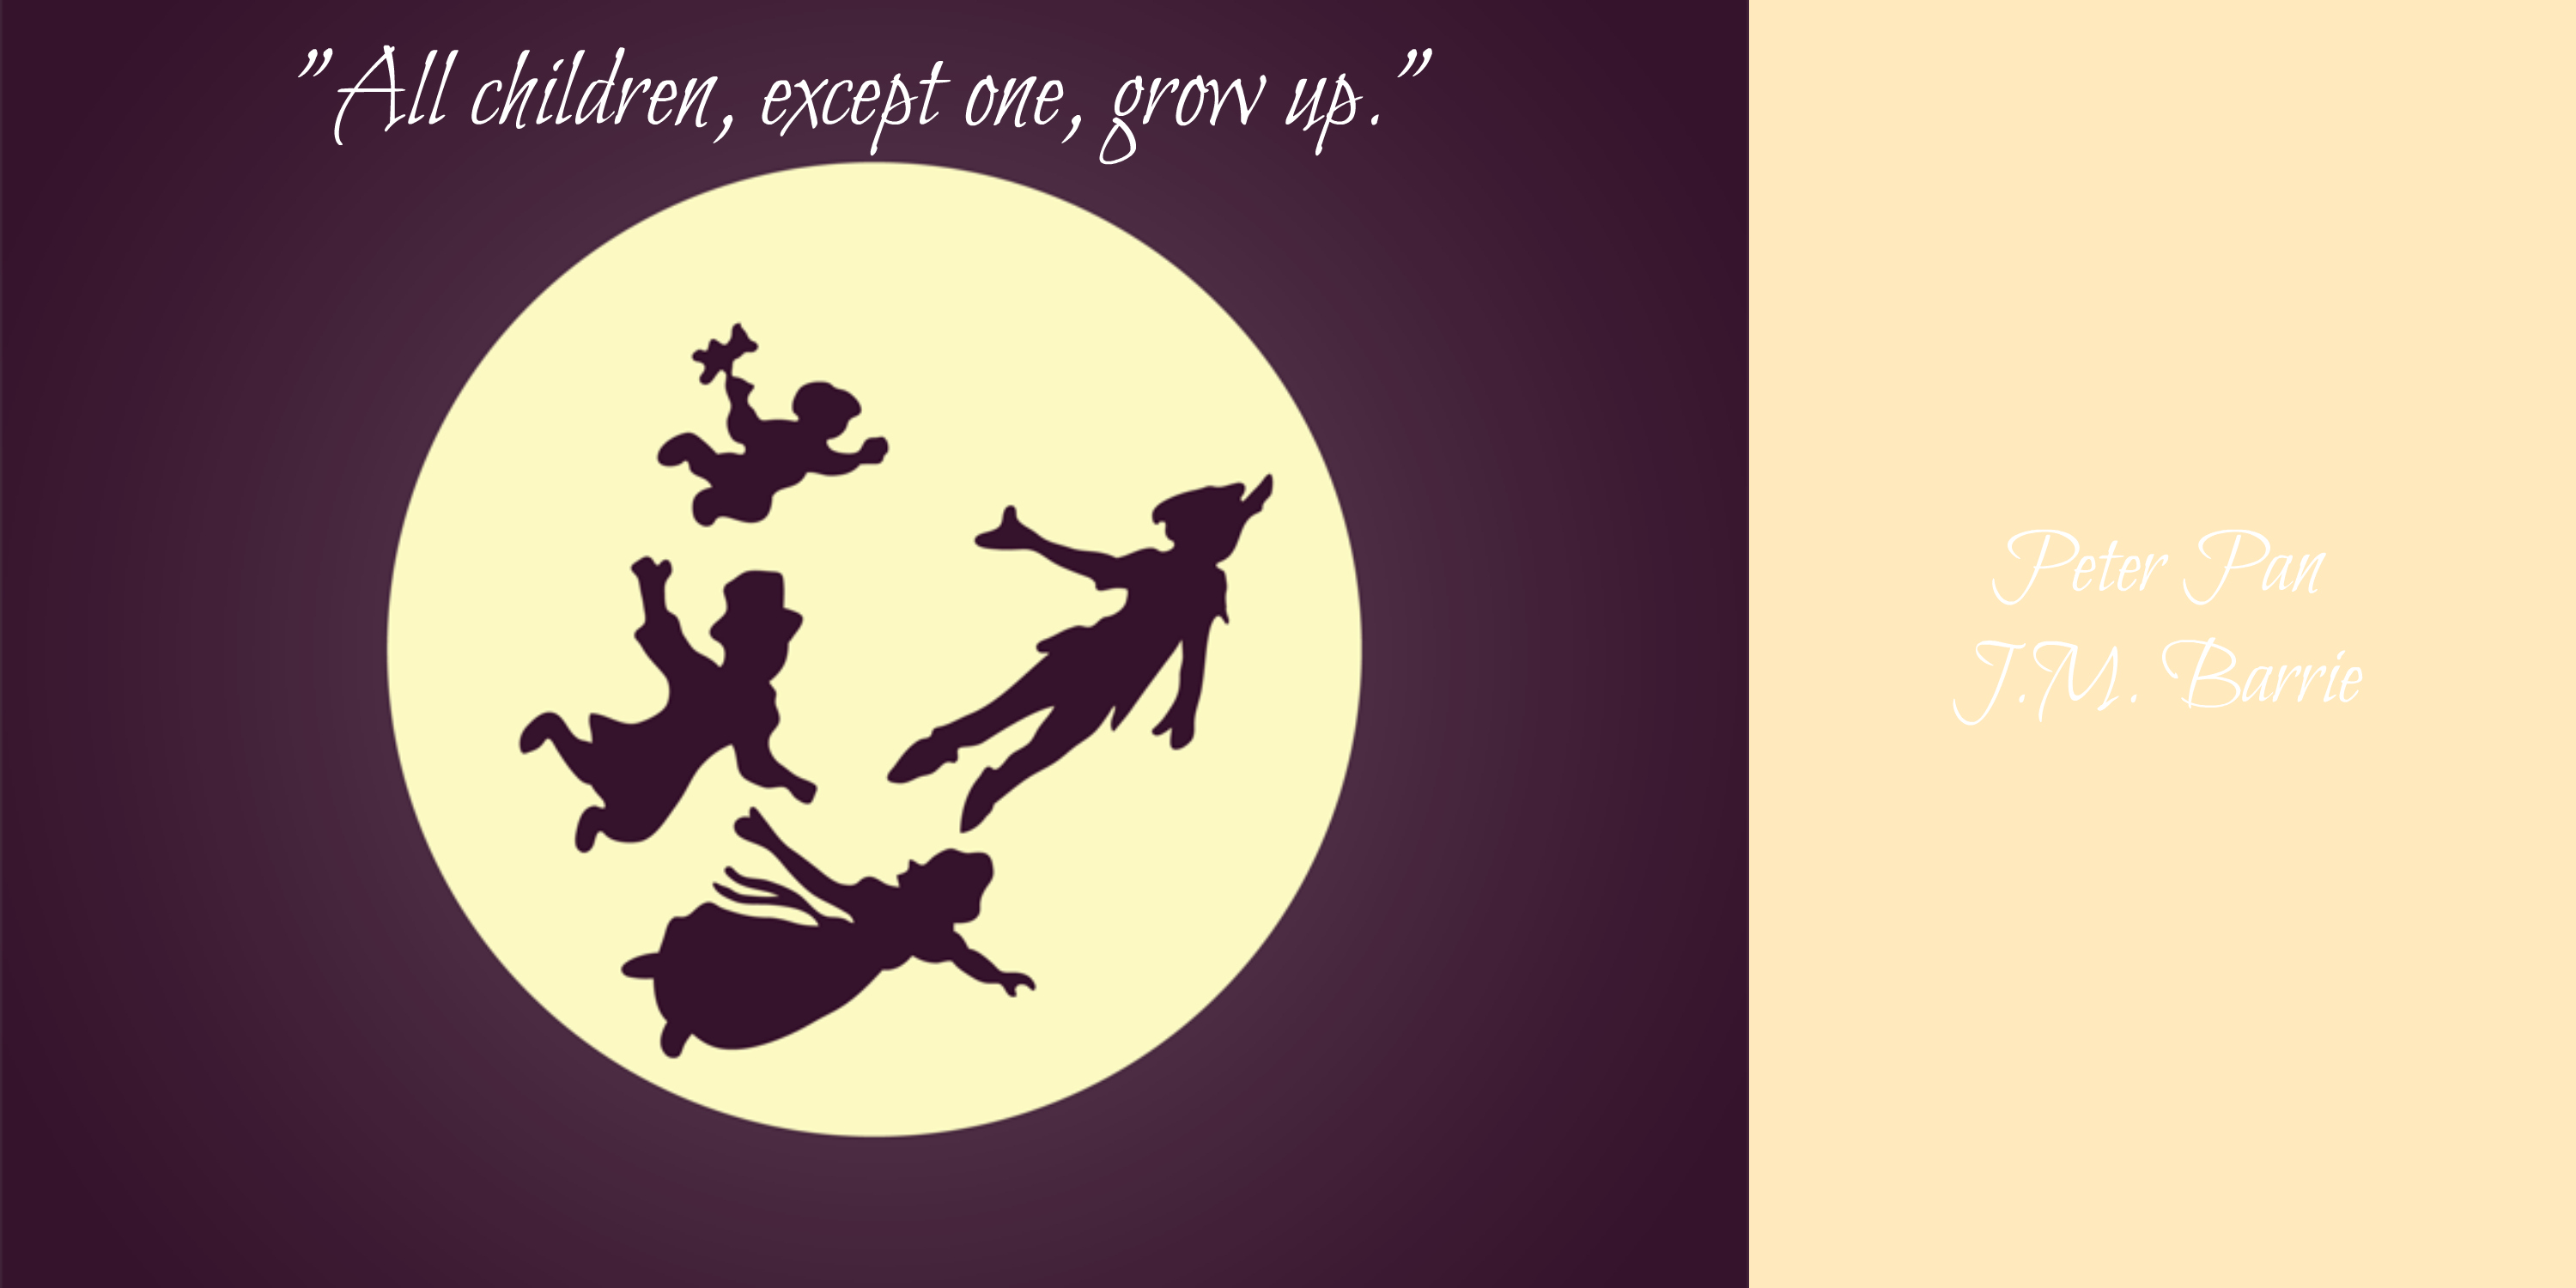 Cool Peter Pan Quotes